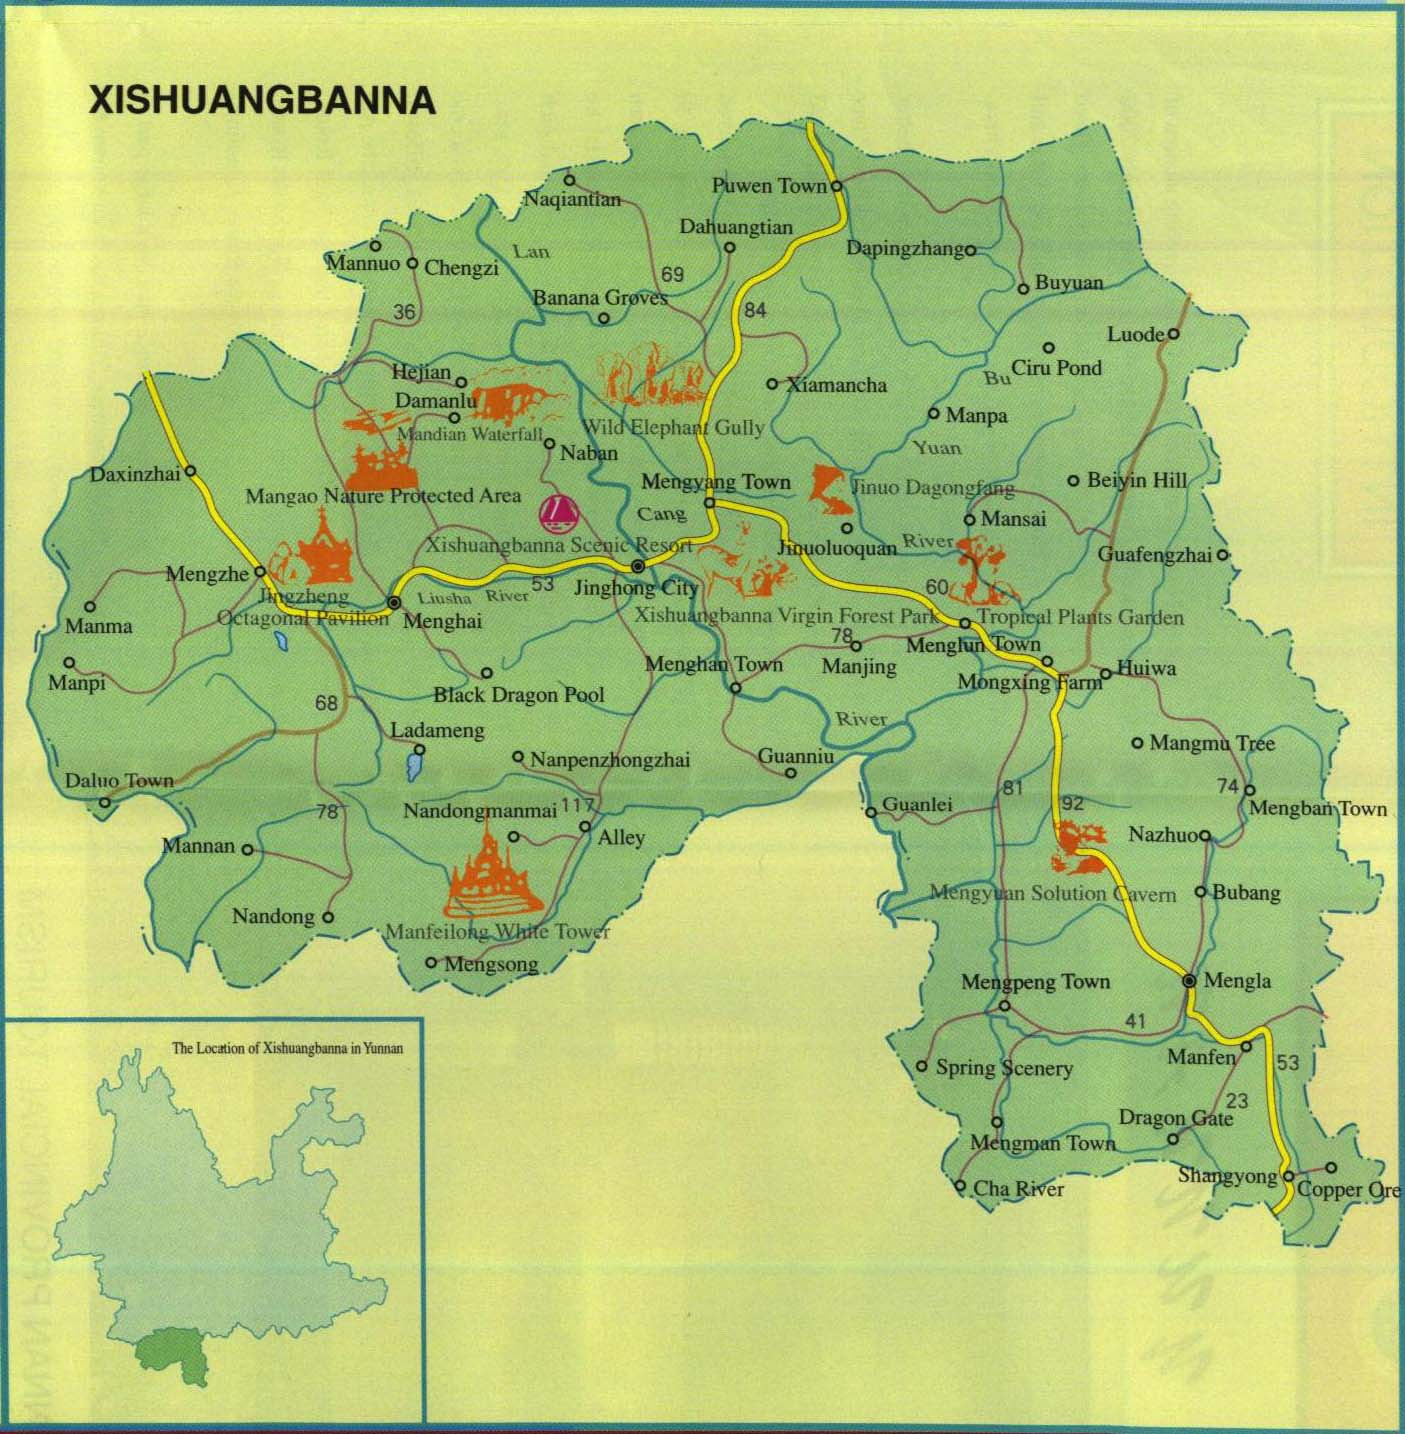 Xishuangbanna Map with Scenic Spots